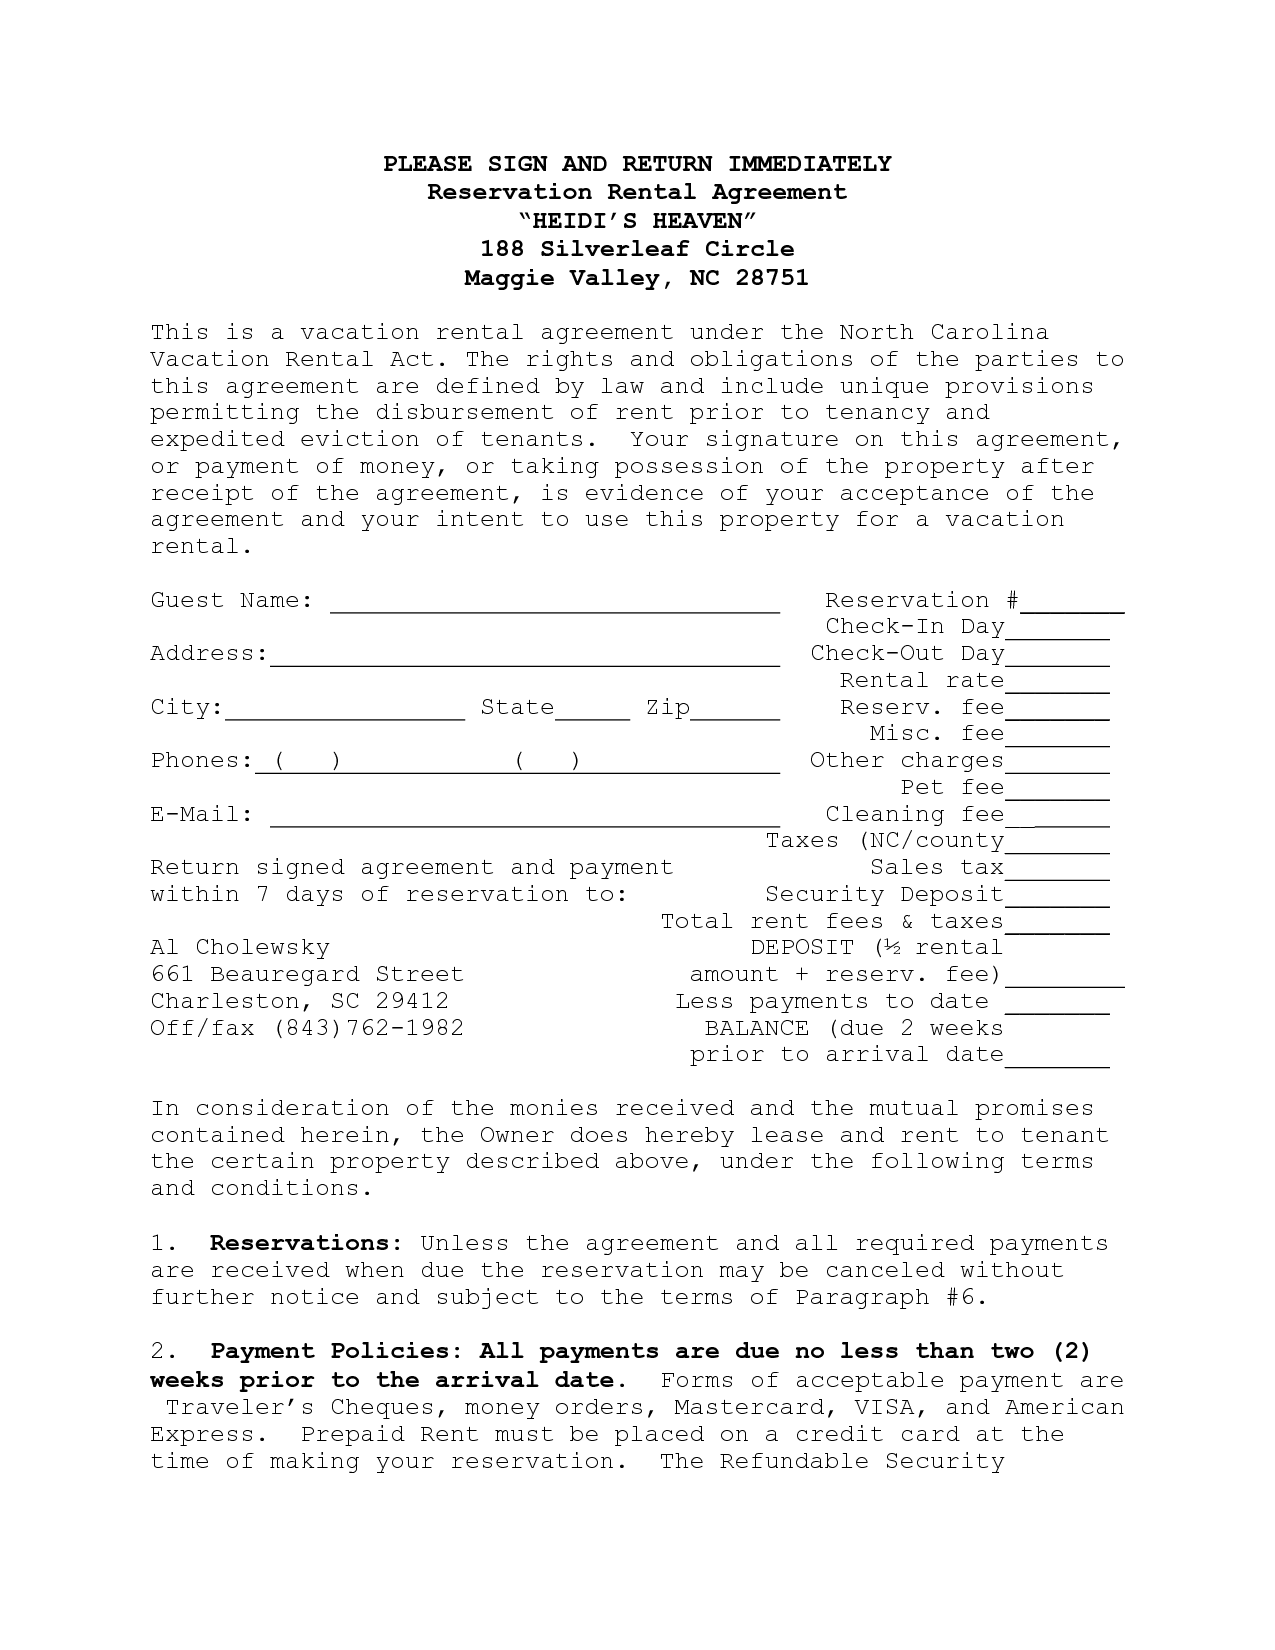 House Lease Agreement Template | House Rental Agreement Contract In North  Carolina